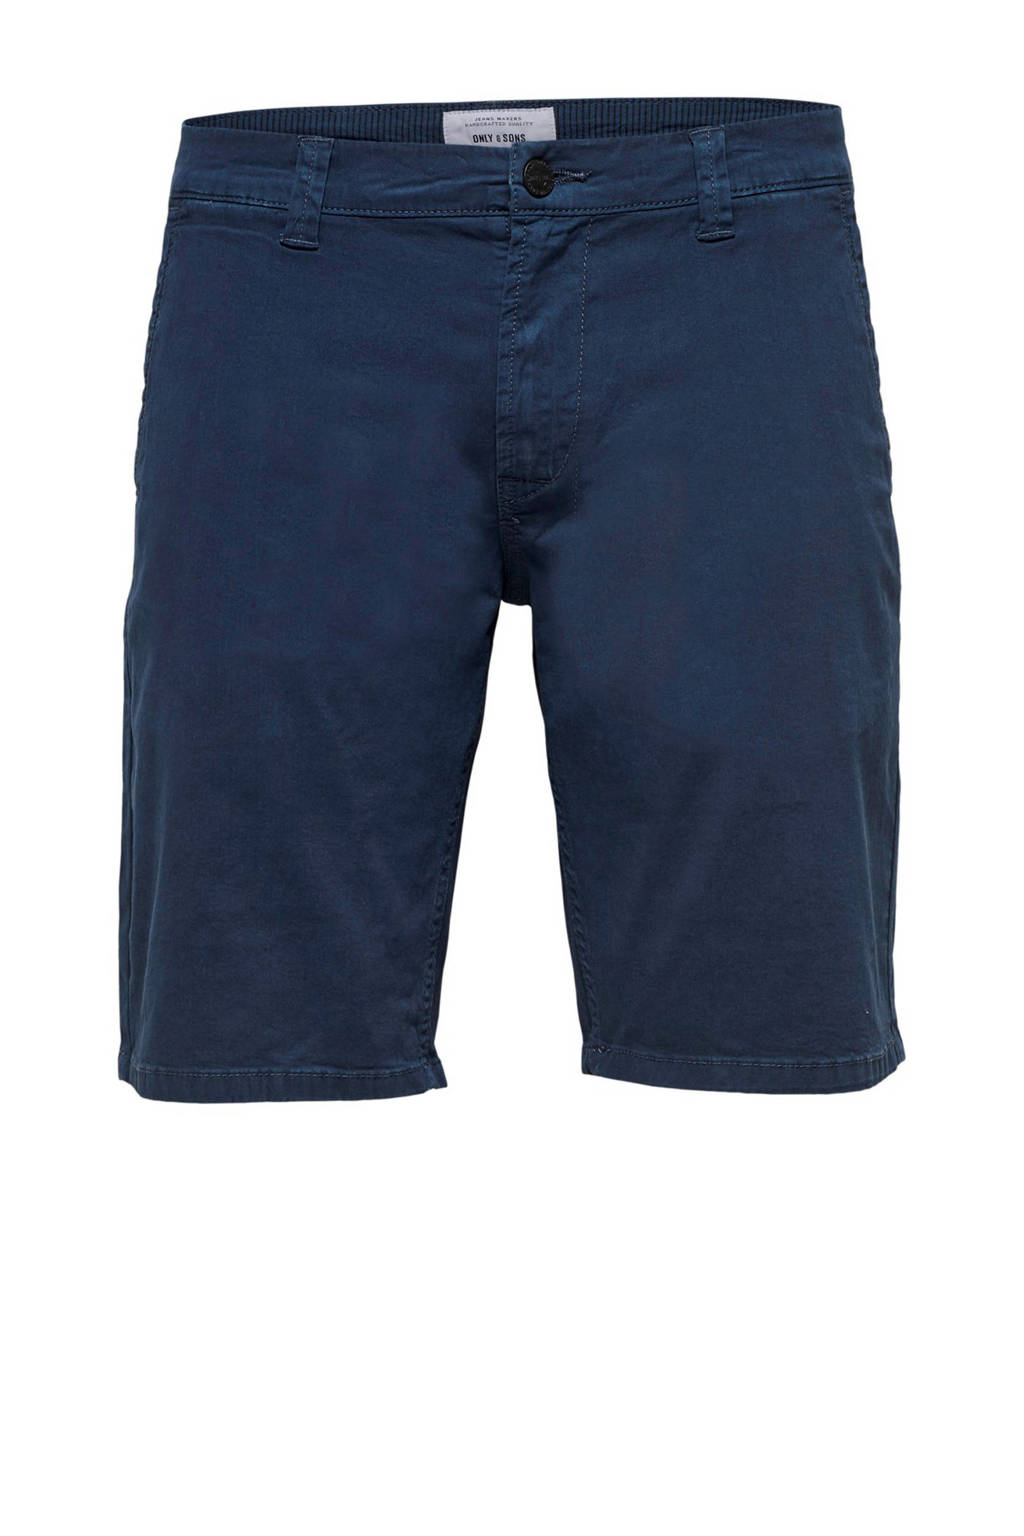 Only & Sons regular fit bermuda Holm, Donkerblauw